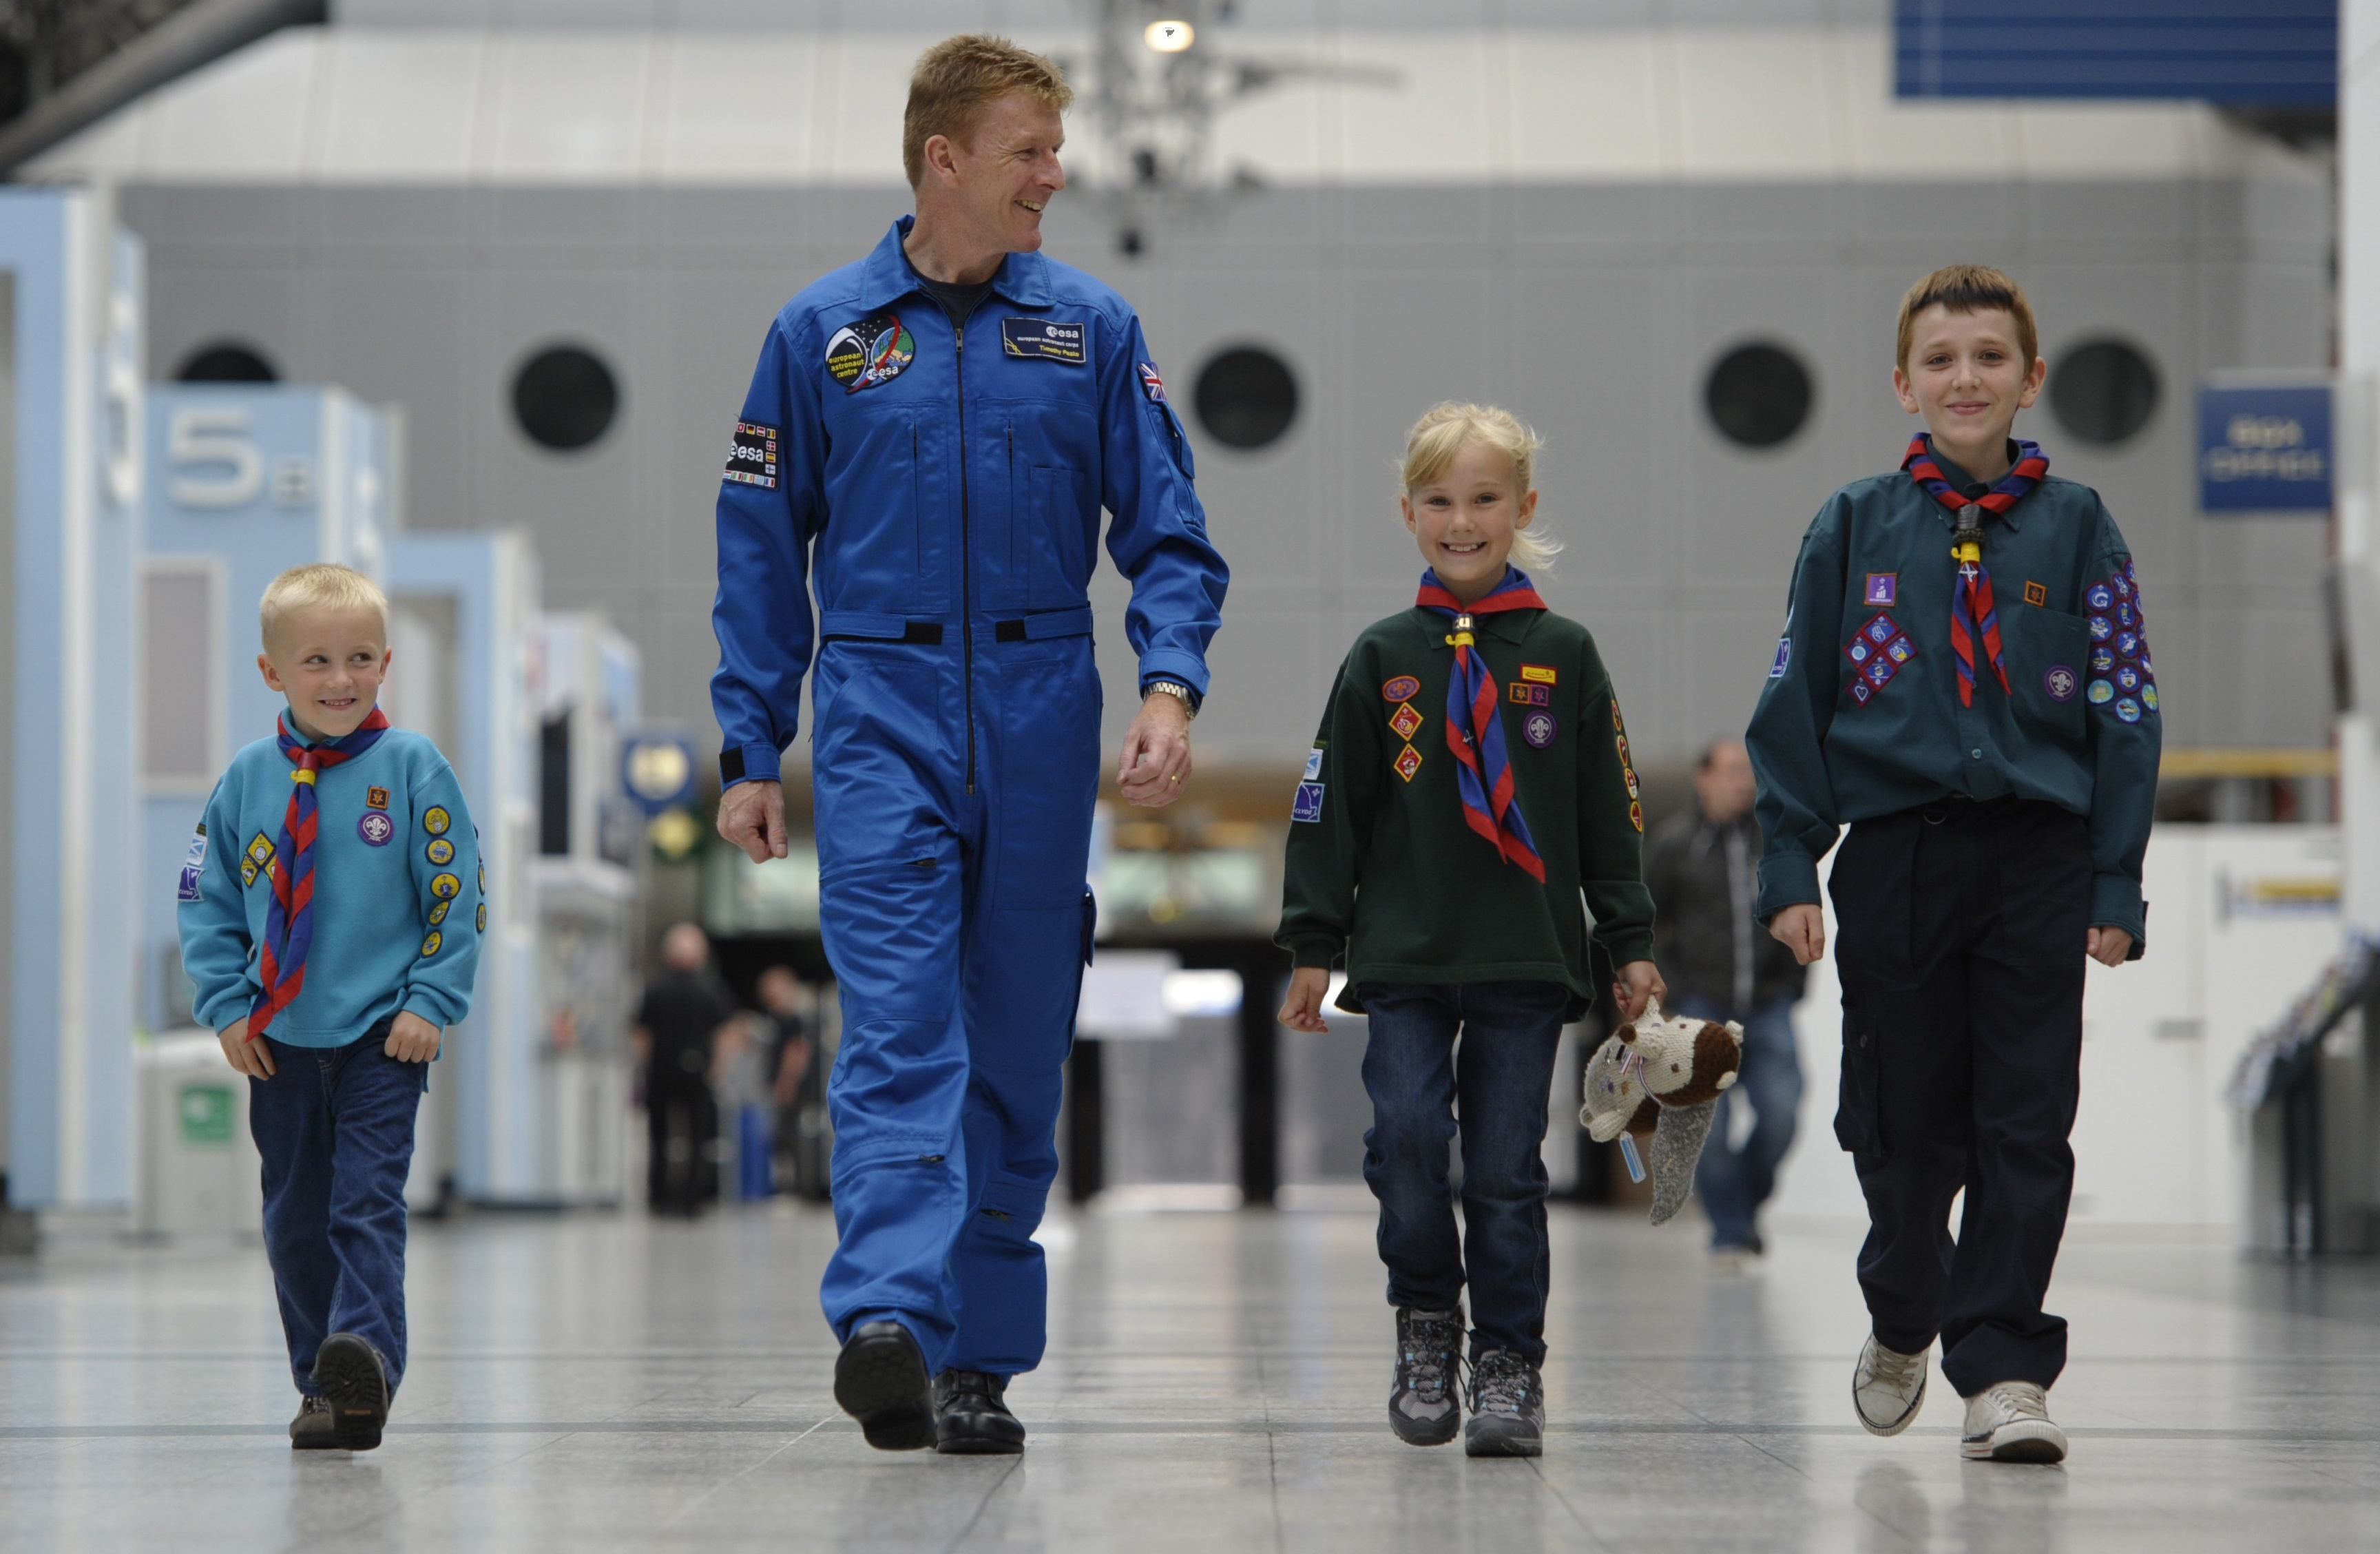 Major Tim hopes to encourage young explorers to carry on the space travel legacy.